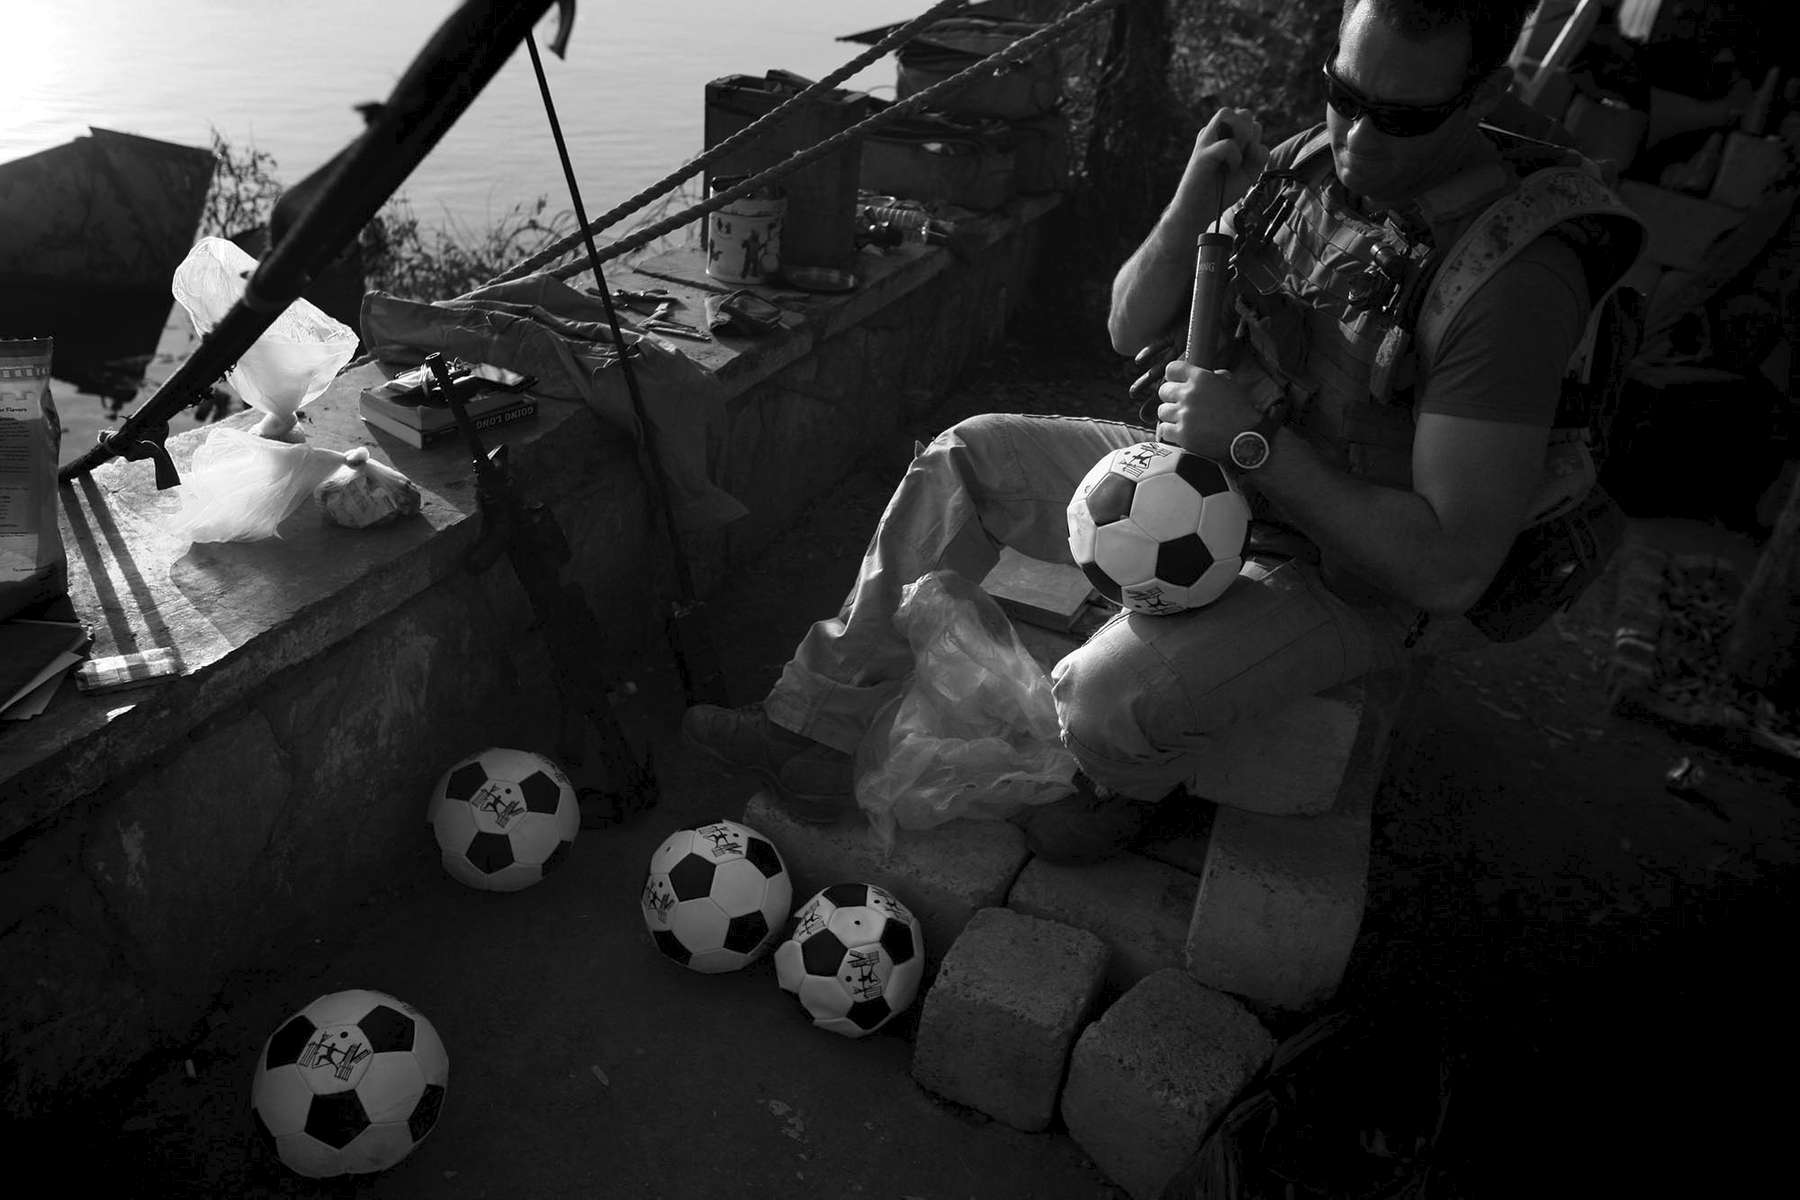 Seaman Chris Welch, 27, pumps up soccer balls which will later be given while the Navy's Riverines are out on patrol in Iraq. The unit routinely gives out soccer balls as part of the {quote}hearts and minds{quote} campaign. As the war winds down, soliders spend more time with such transitional acts. Welch is from Norfolk and is part of the Navy's Riverine Squadron One.